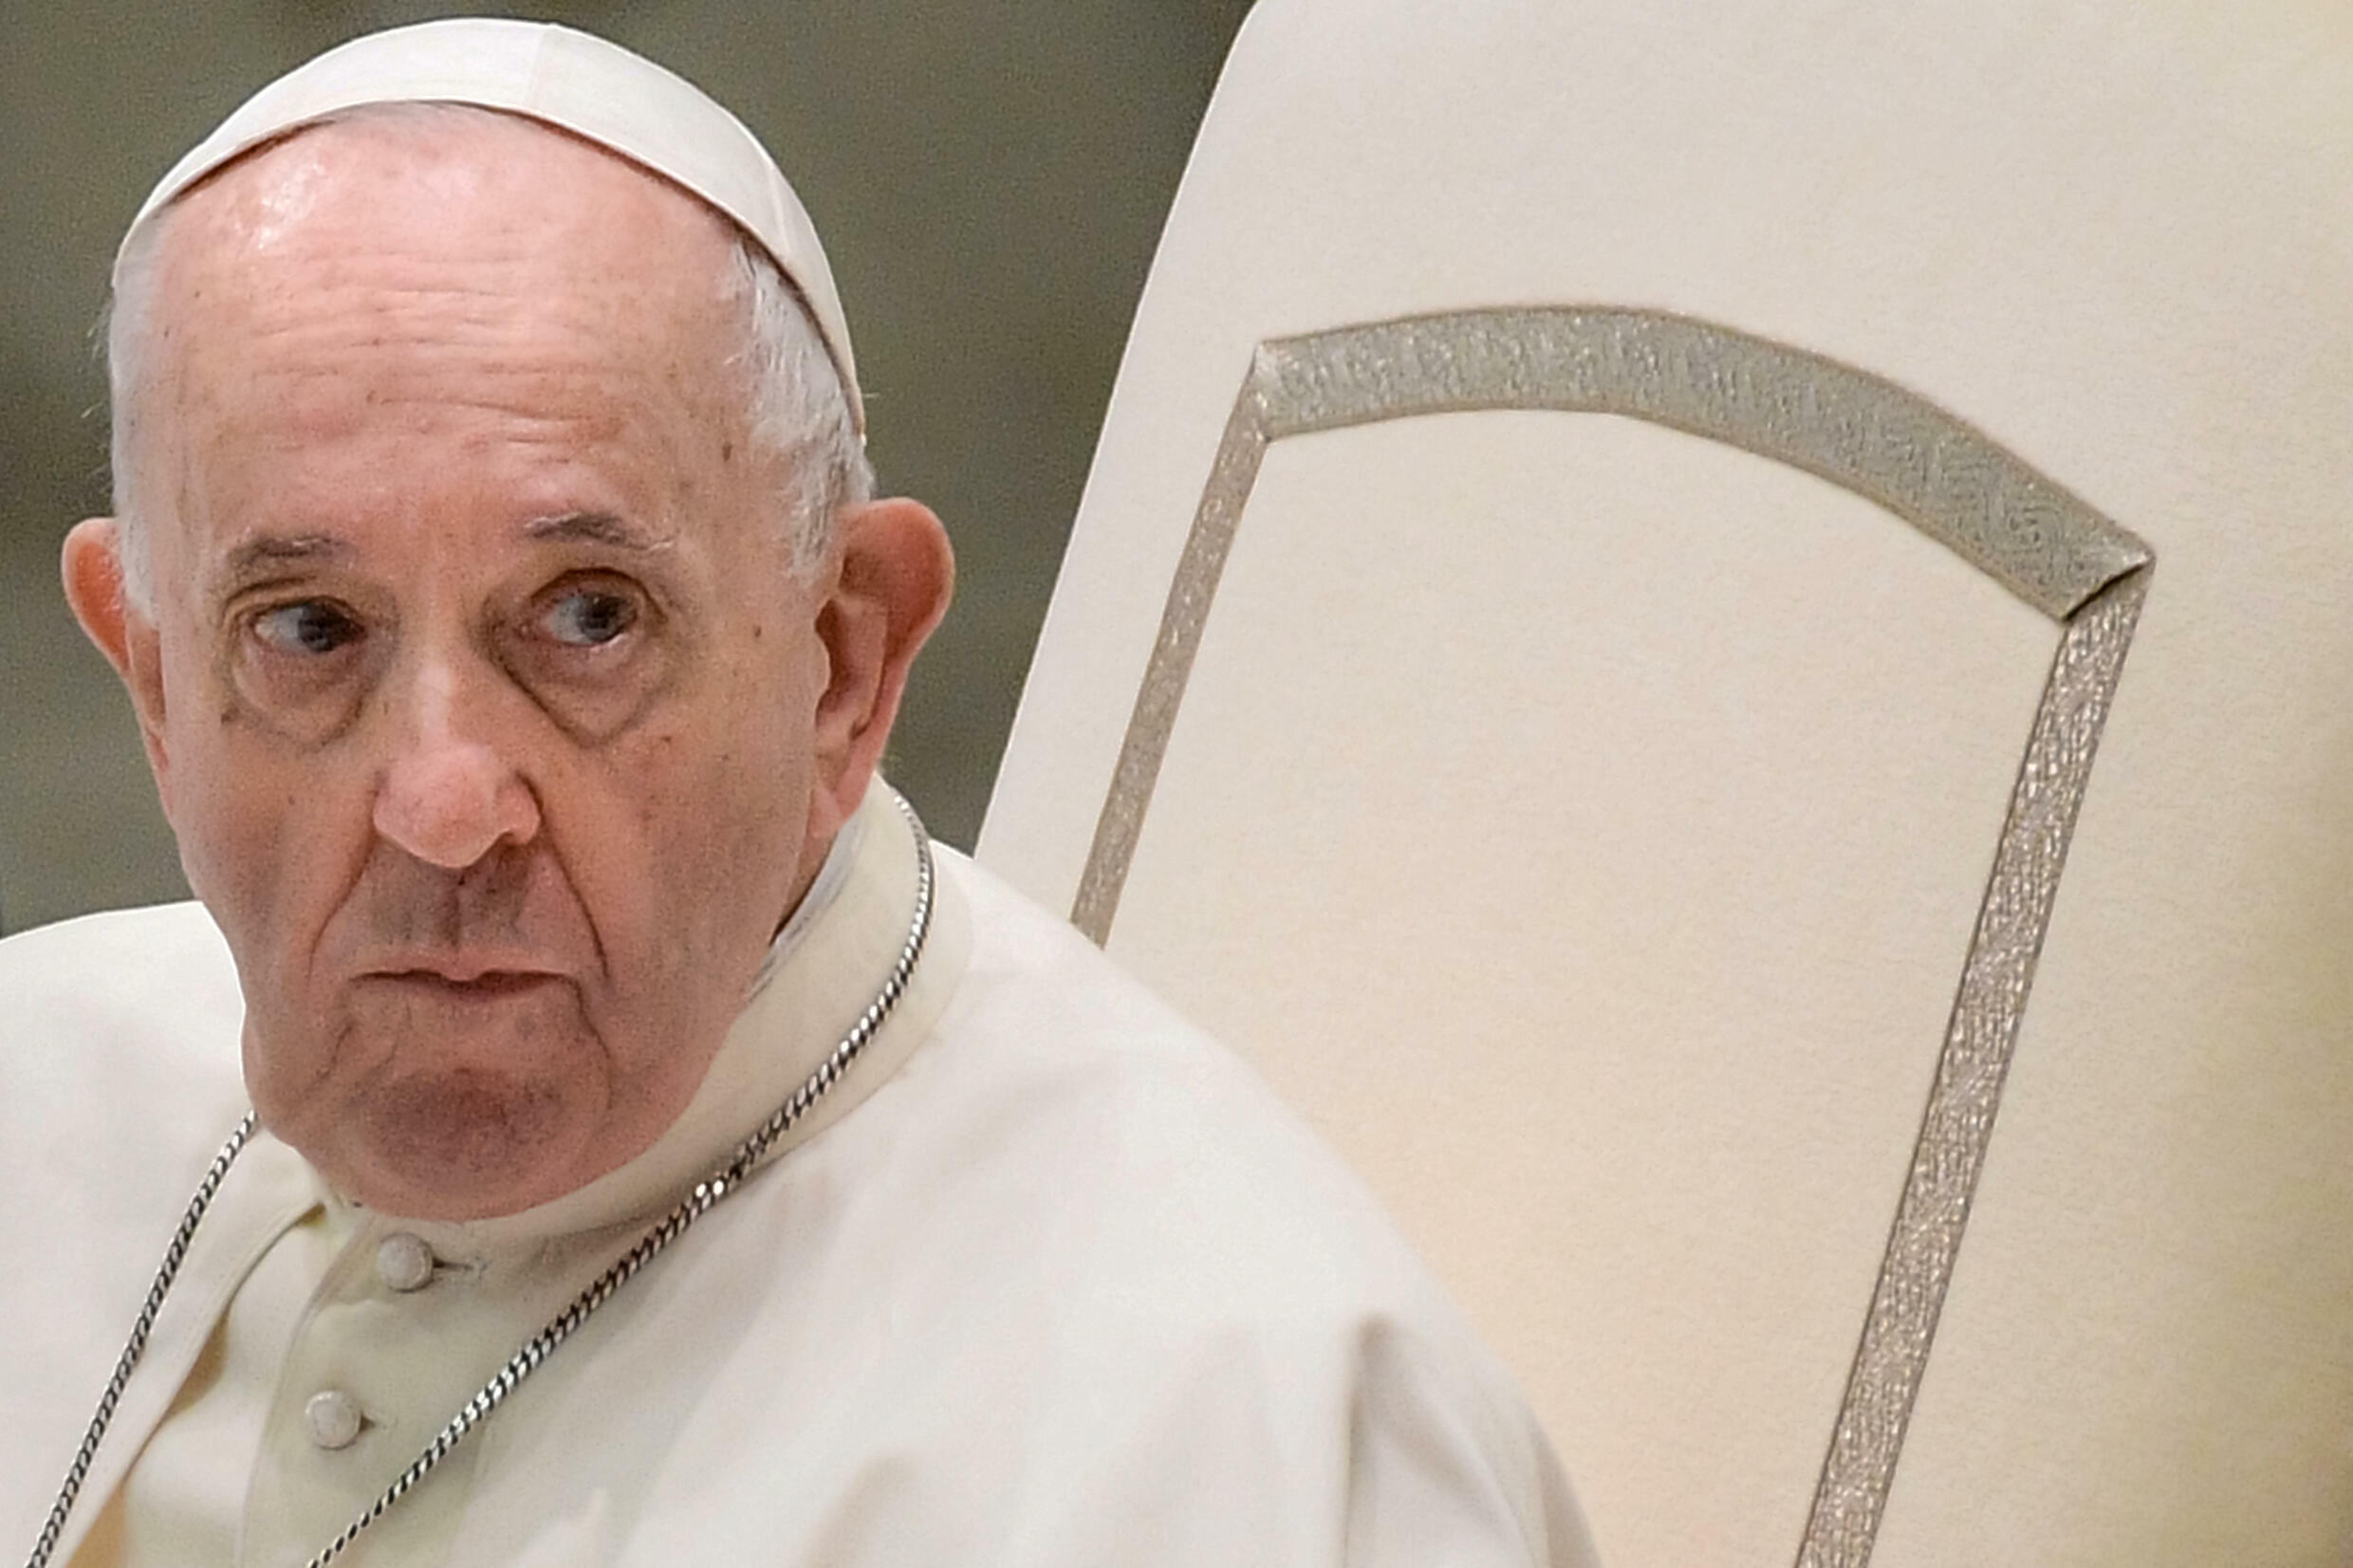 Pope Francis issued a statement through his spokesman Tuesday expressing his sorrow for the victims, but went further in a personal message delivered during his weekly general audience at the Vatican